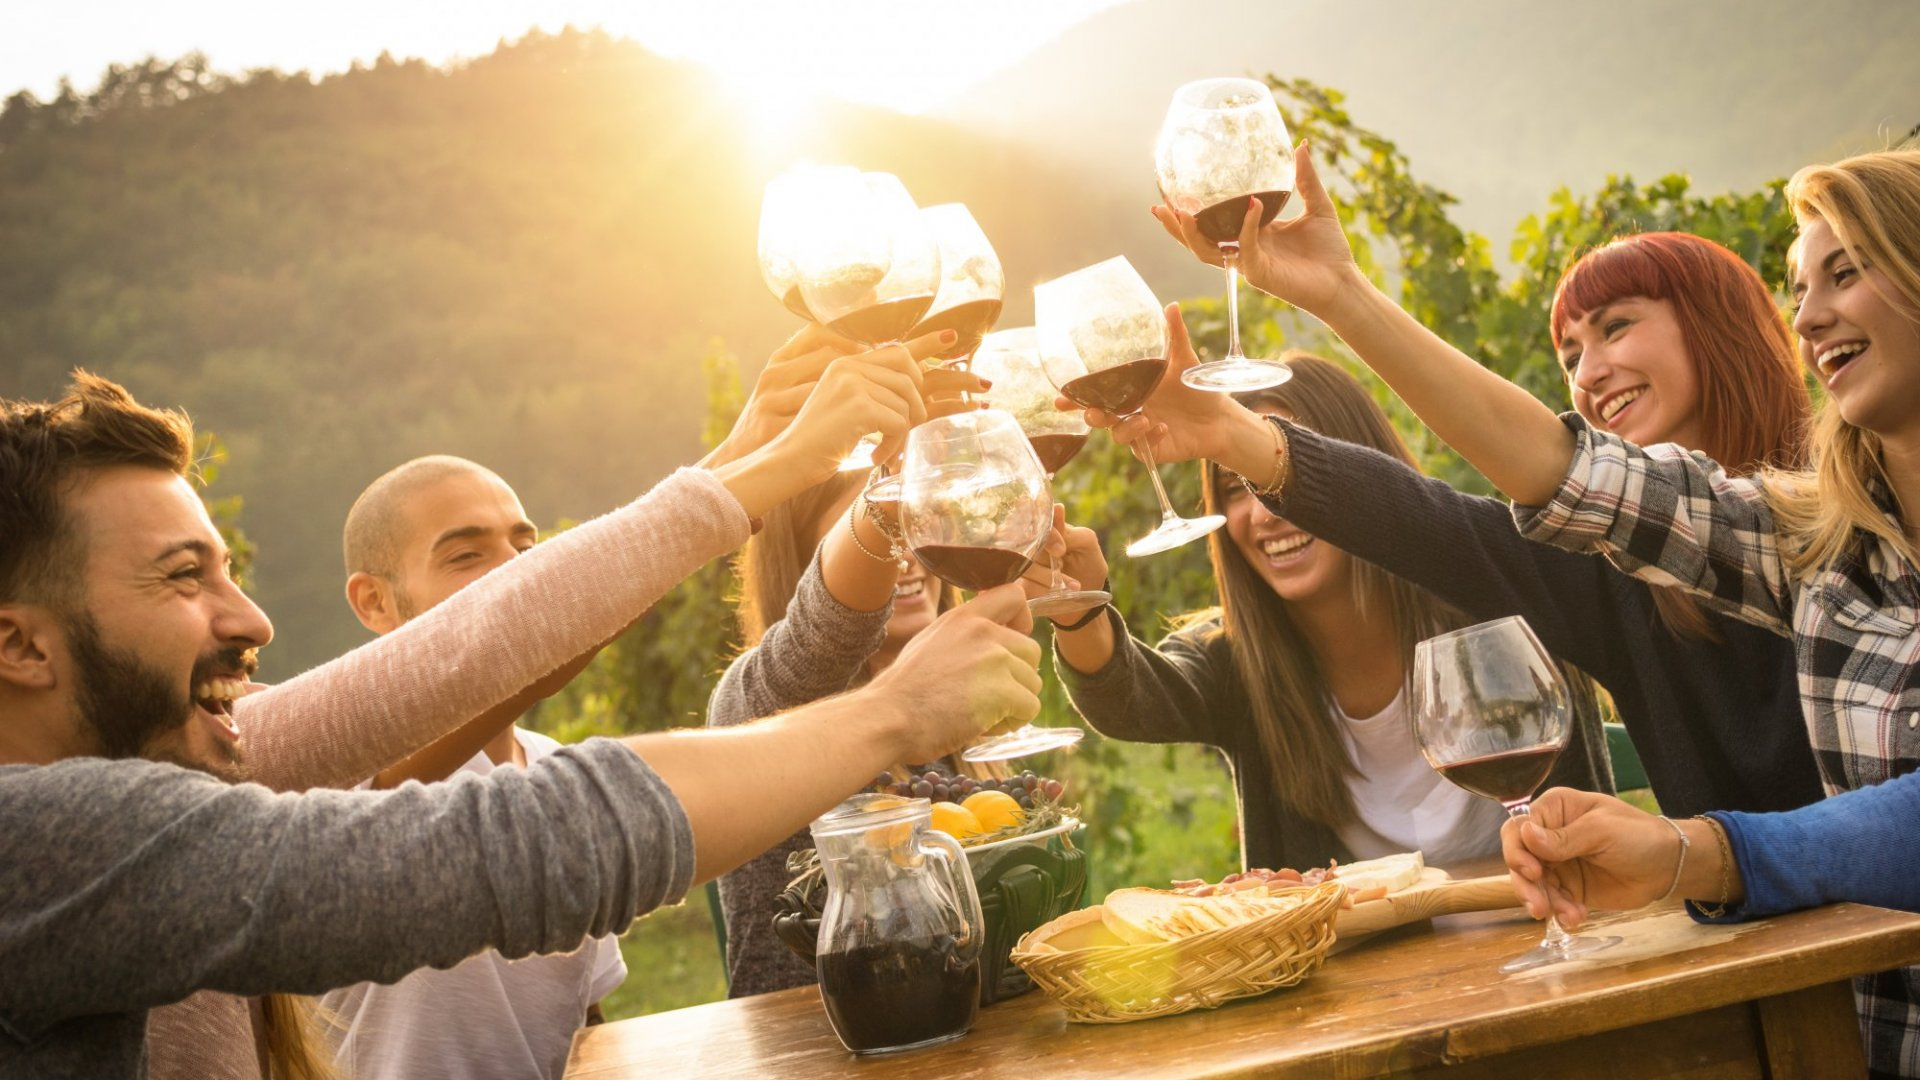 A Massive New Harvard Study of 21,000 People Says Drinking 1 Glass of Wine Each Day Leads to This Surprising Benefit